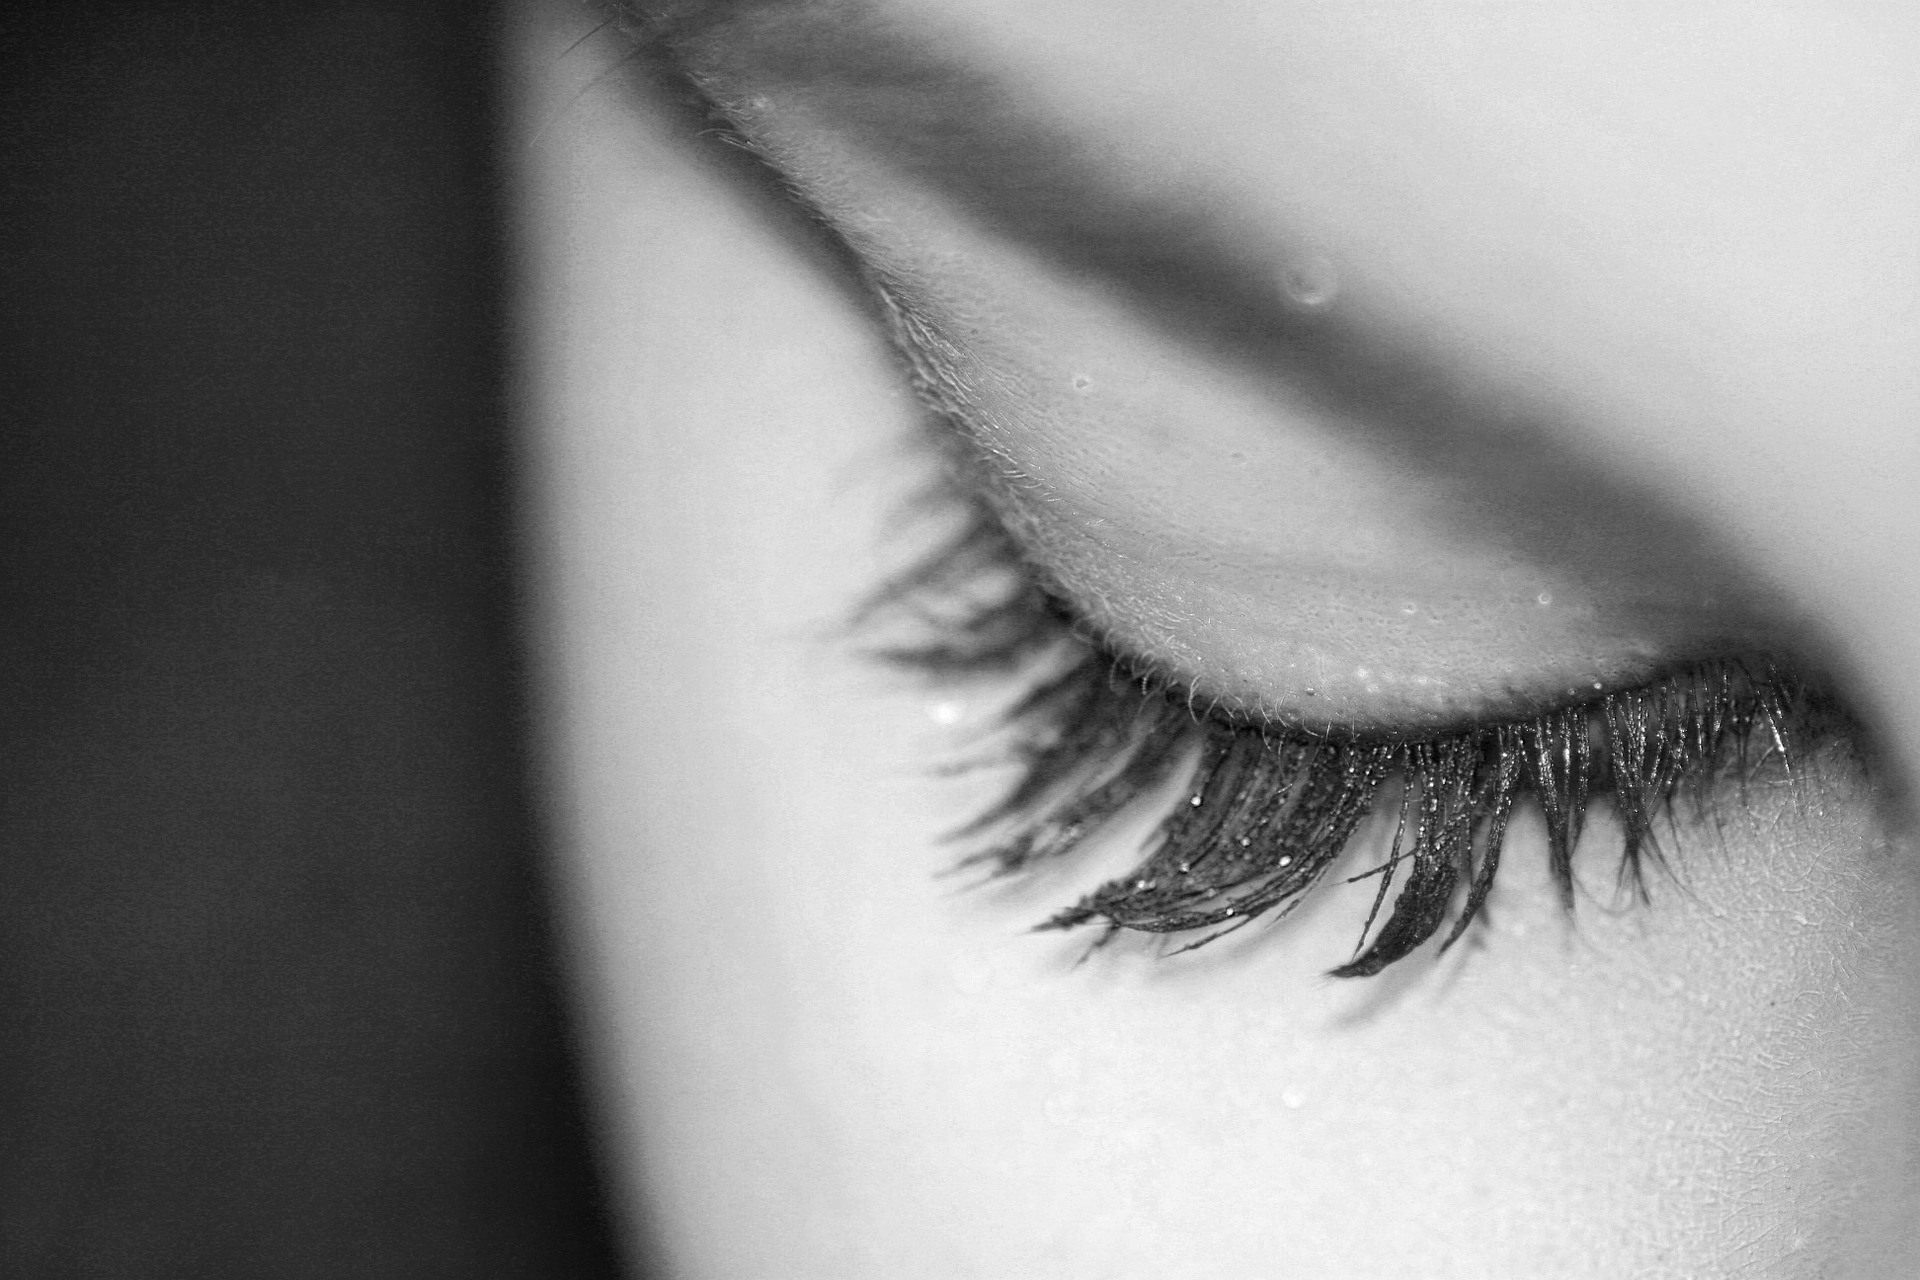 Close up of a woman's closed eye who has had eyelash extensions applied. For use on the Classic Lashes Course page.